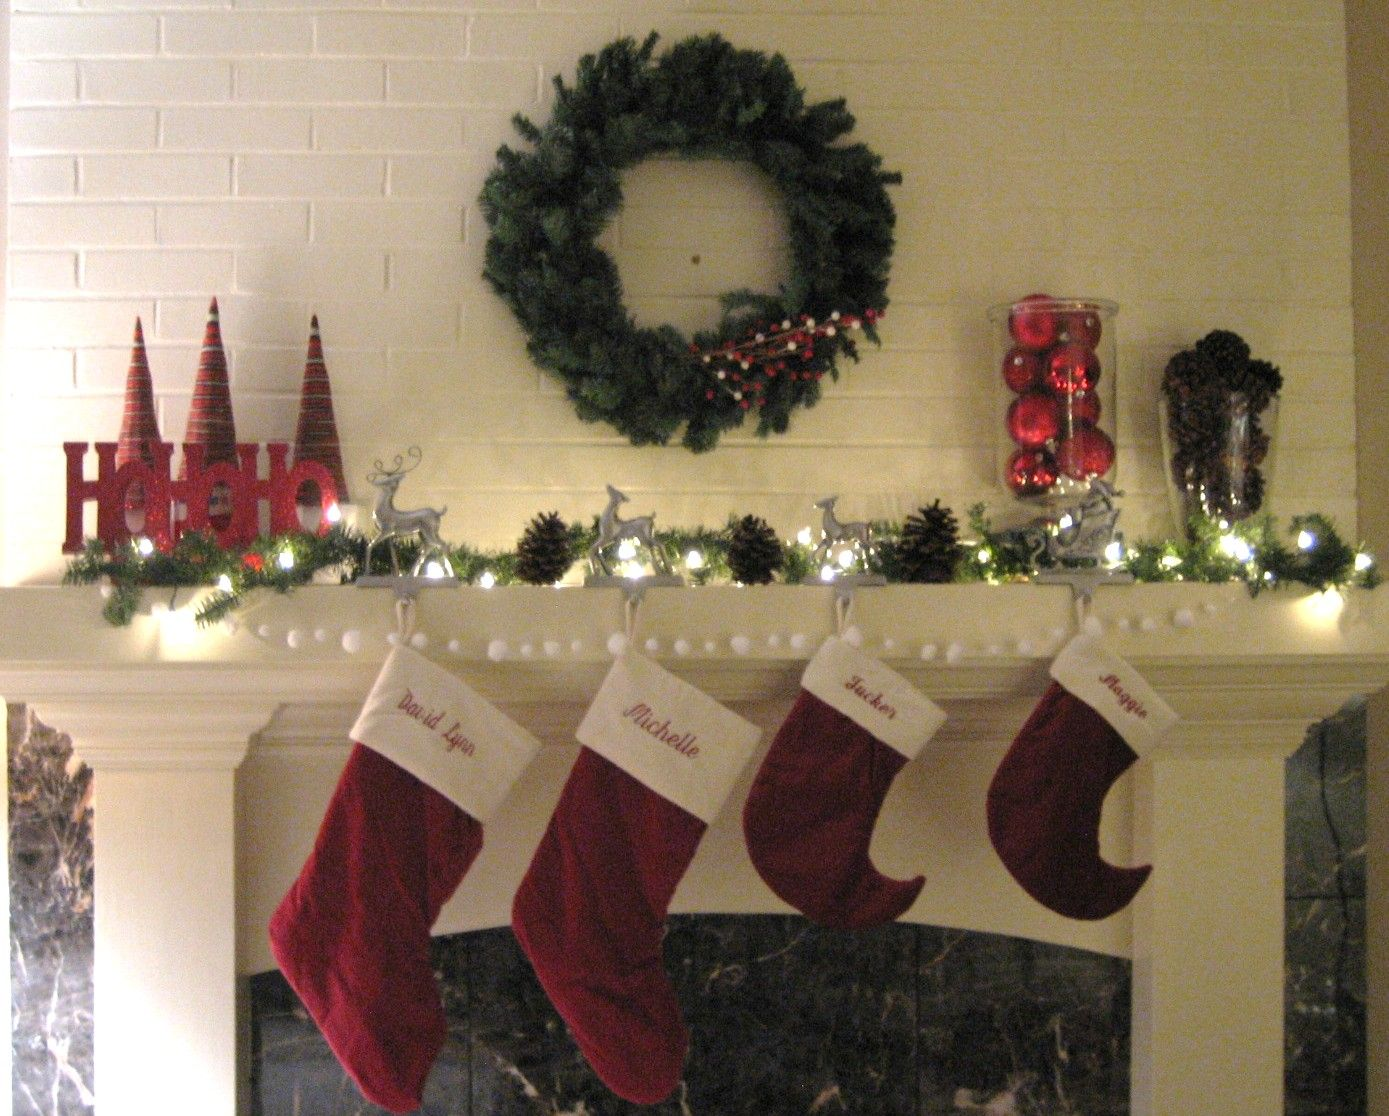 Holiday Mantel Decorating Ideas Part - 32: Feasible Christmas Themed Fireplace Mantel Decorating Ideas : Ravishing Christmas  Mantel Decorating Idea With Red Stockings Also White Fireplace Surround ...